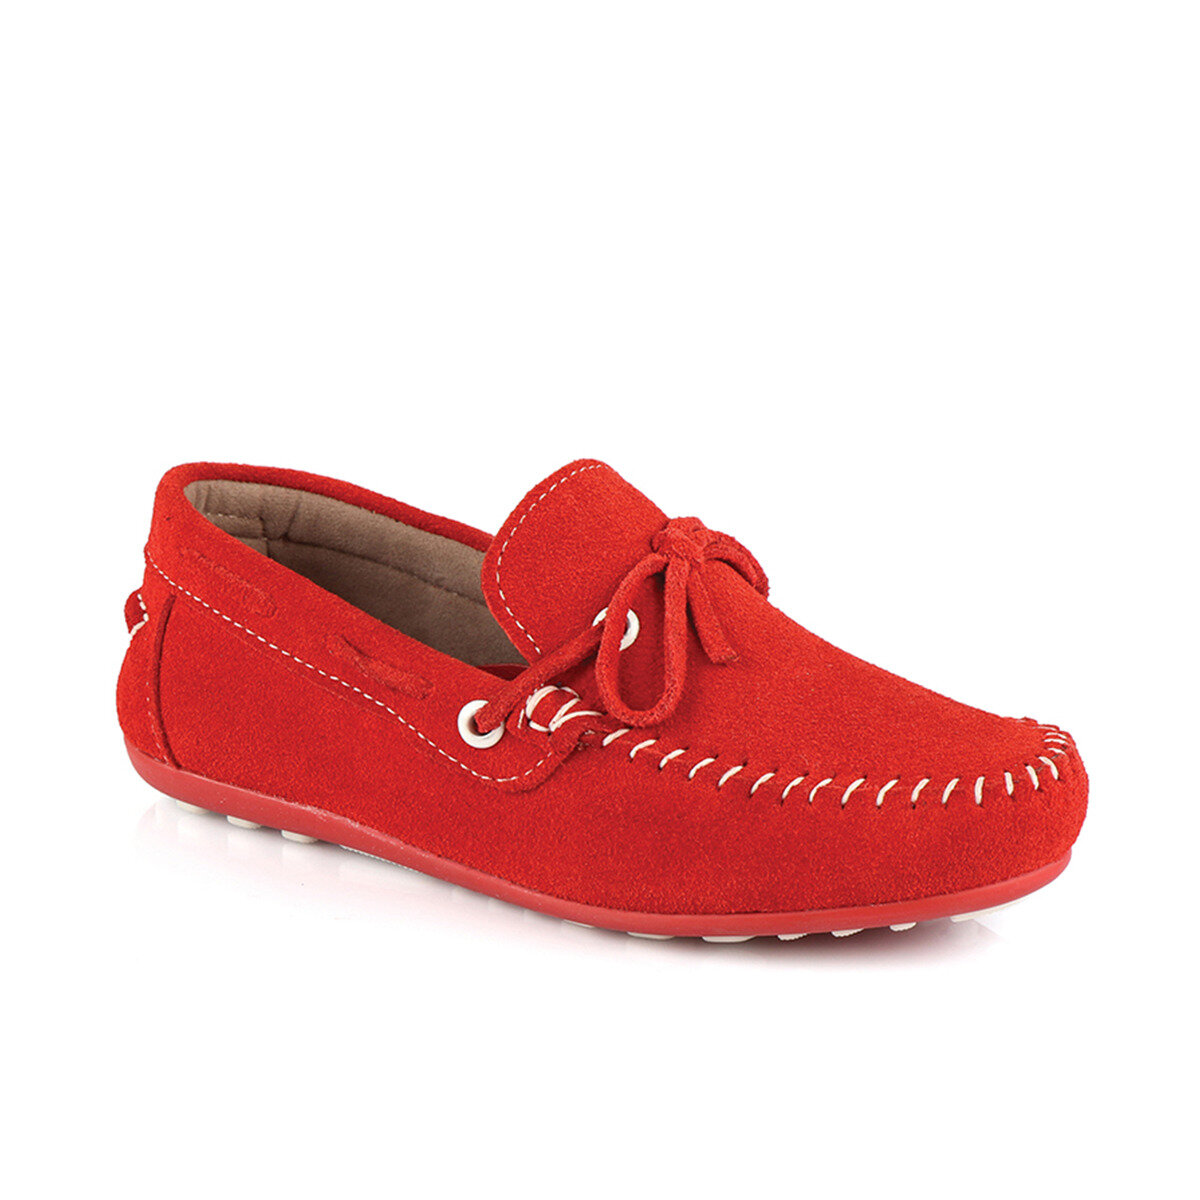 FLO 908.18Y.302 F LEATHER Red Male Child Loafer Shoes VICCO